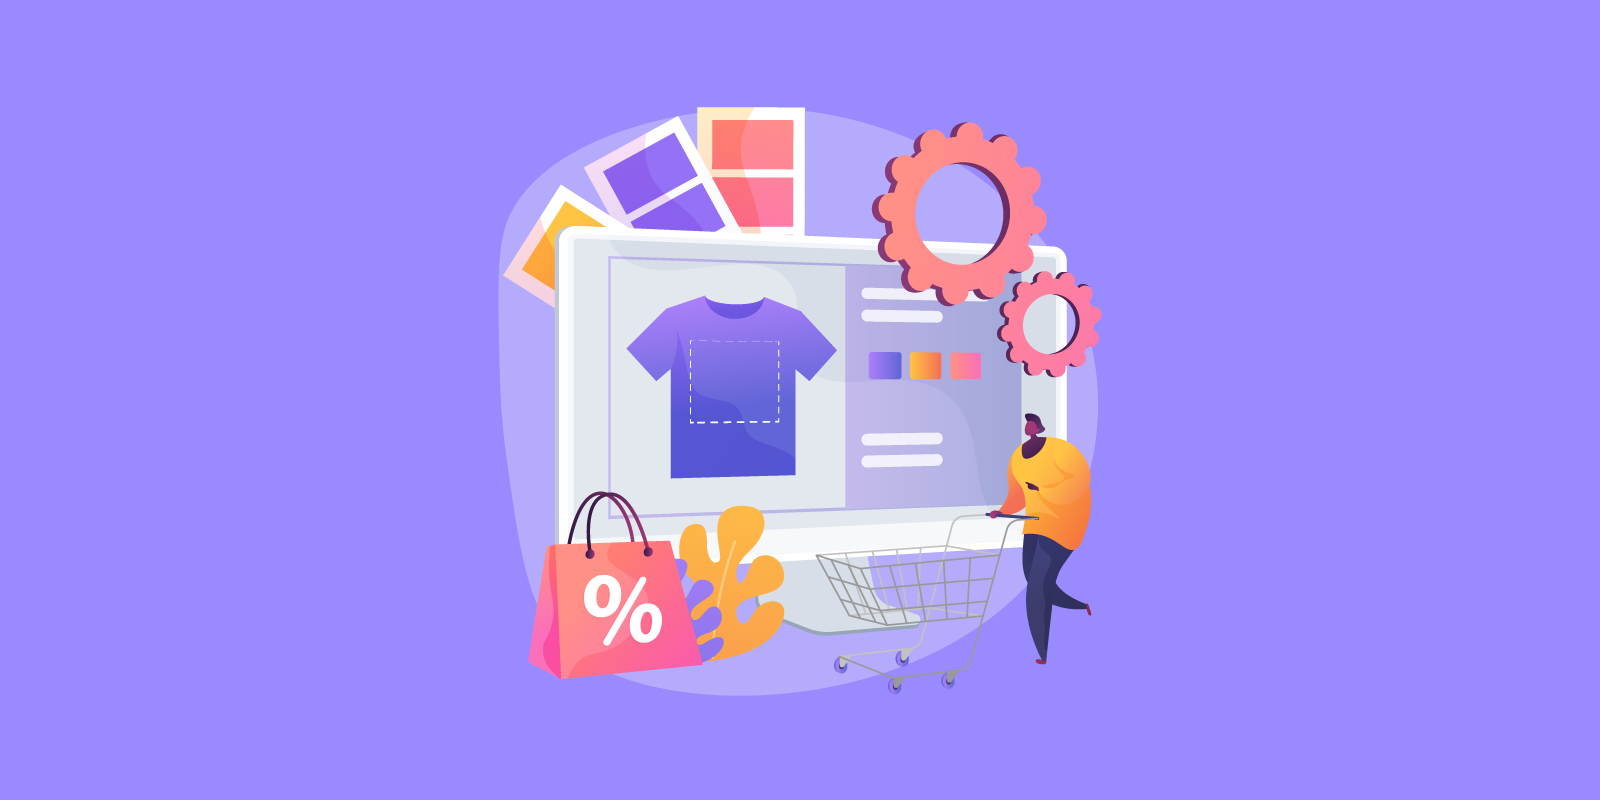 How to Get More Sales on Shopify